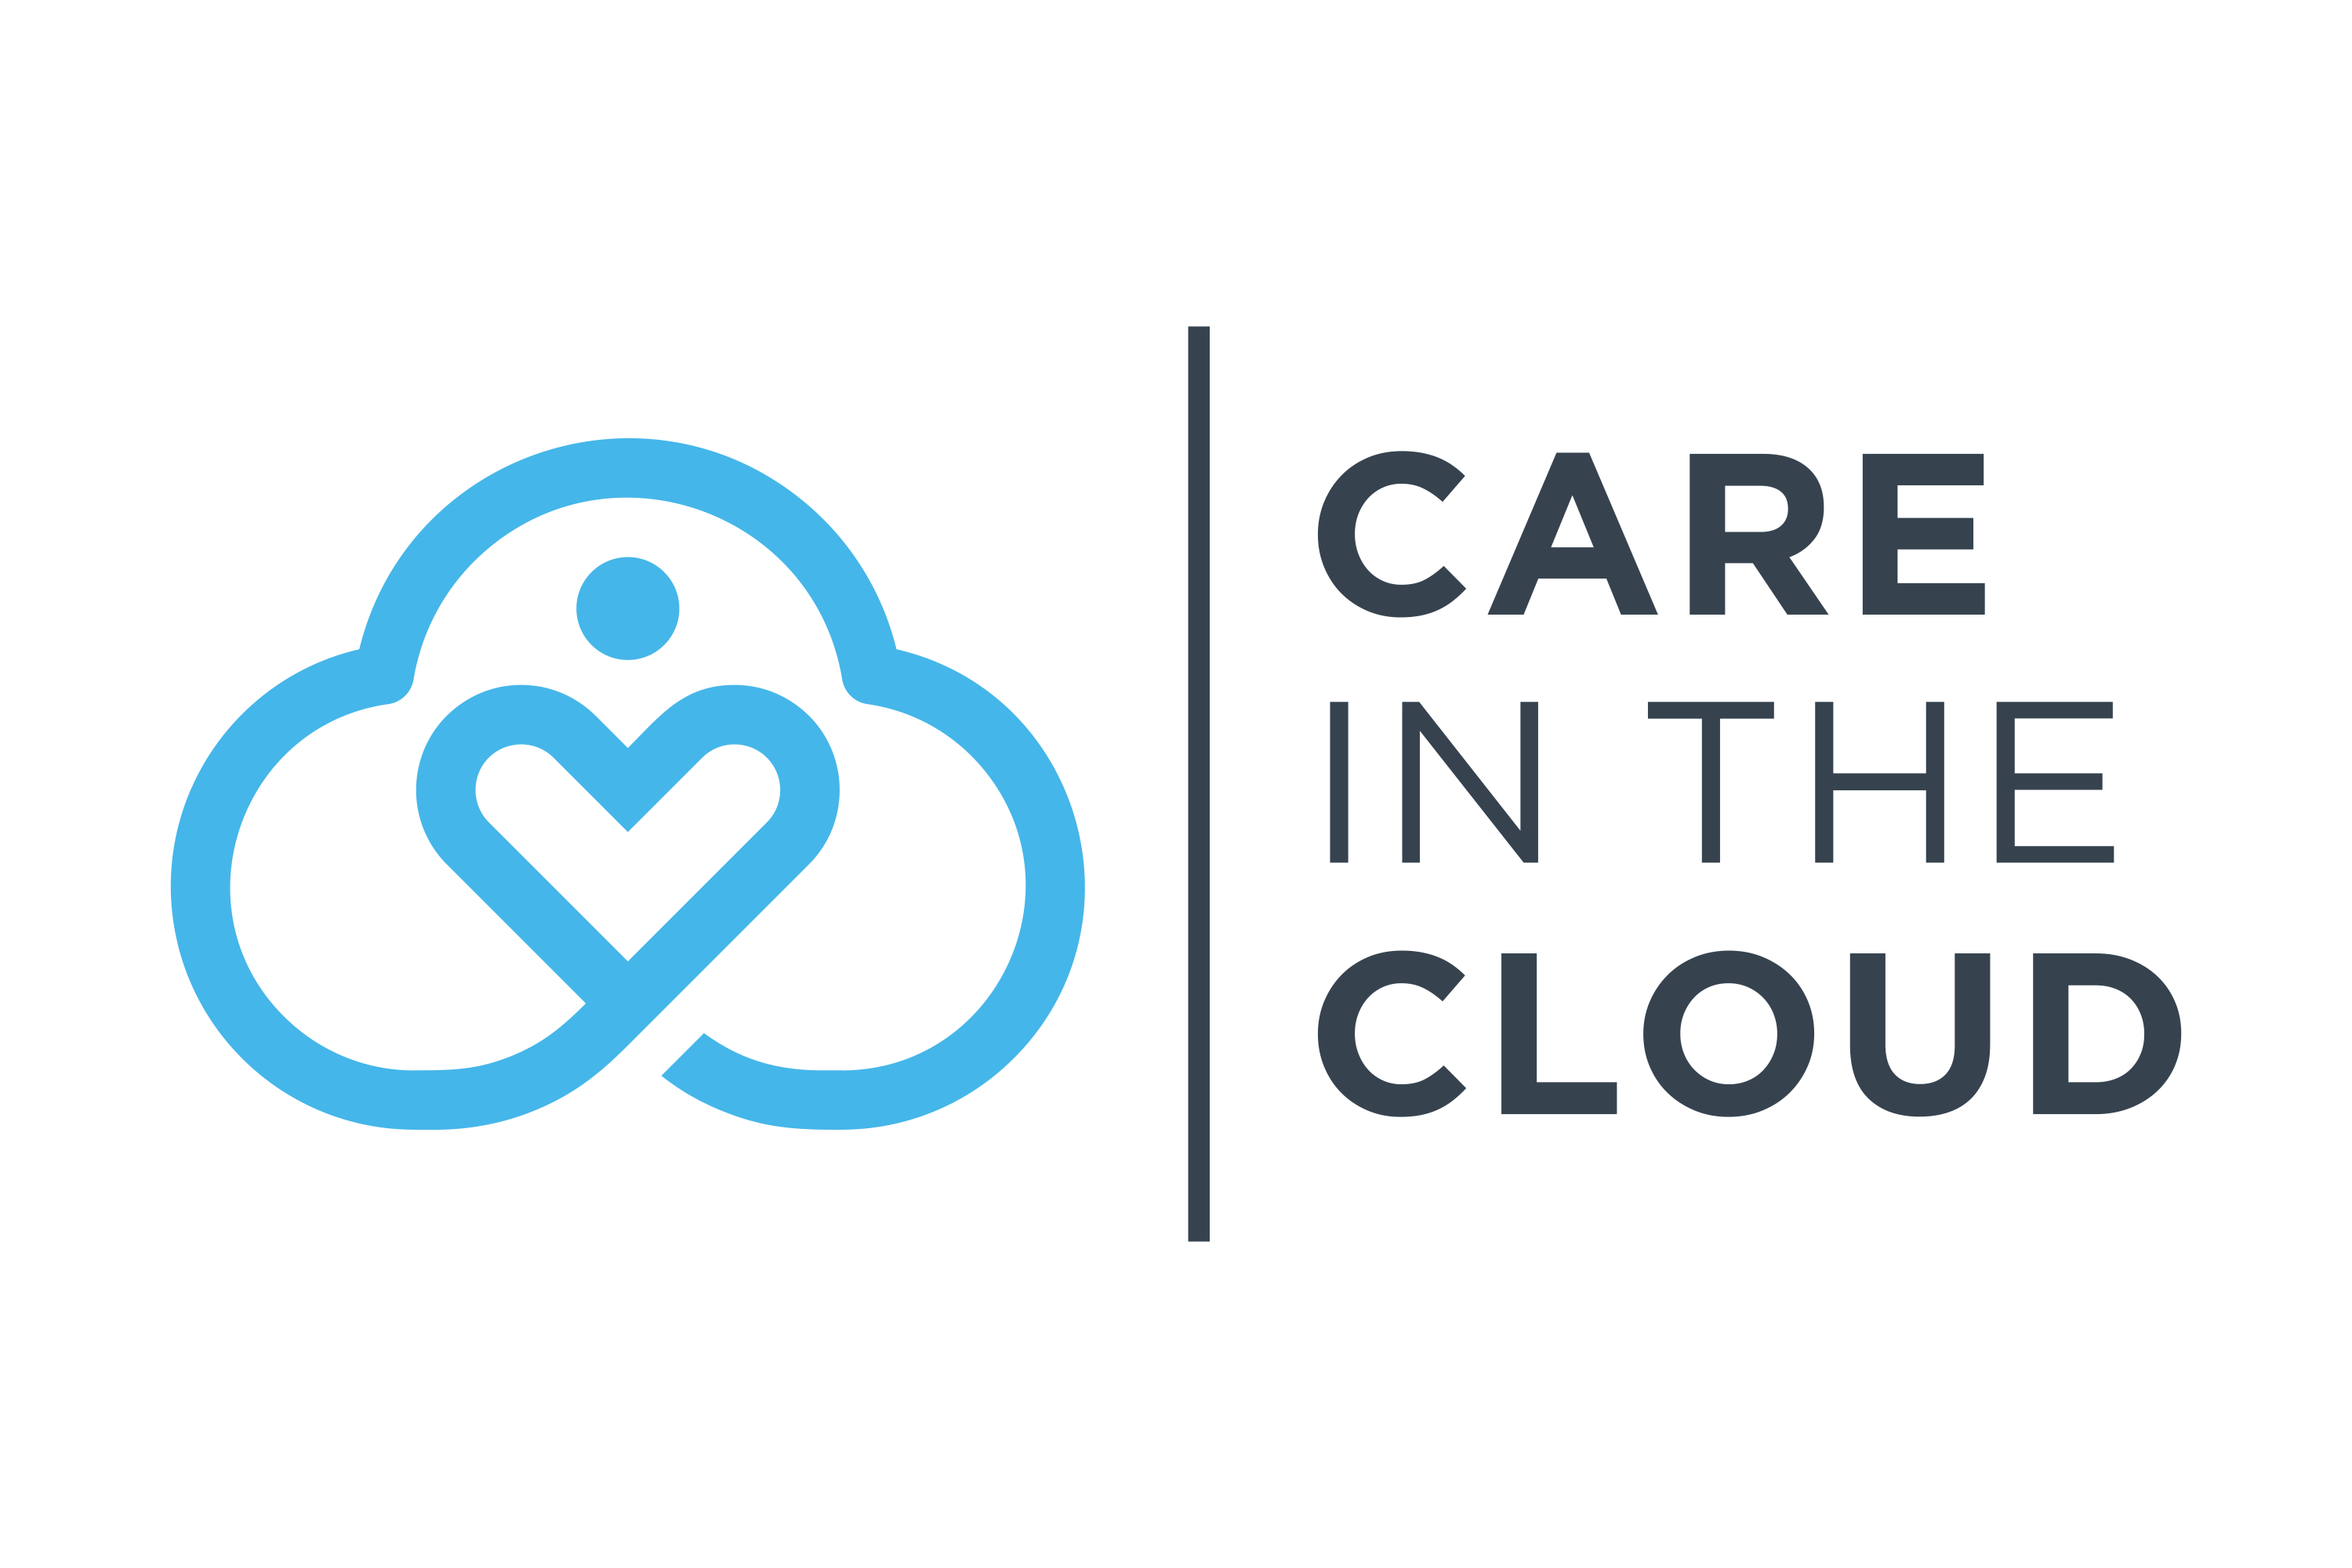 Care in the cloud